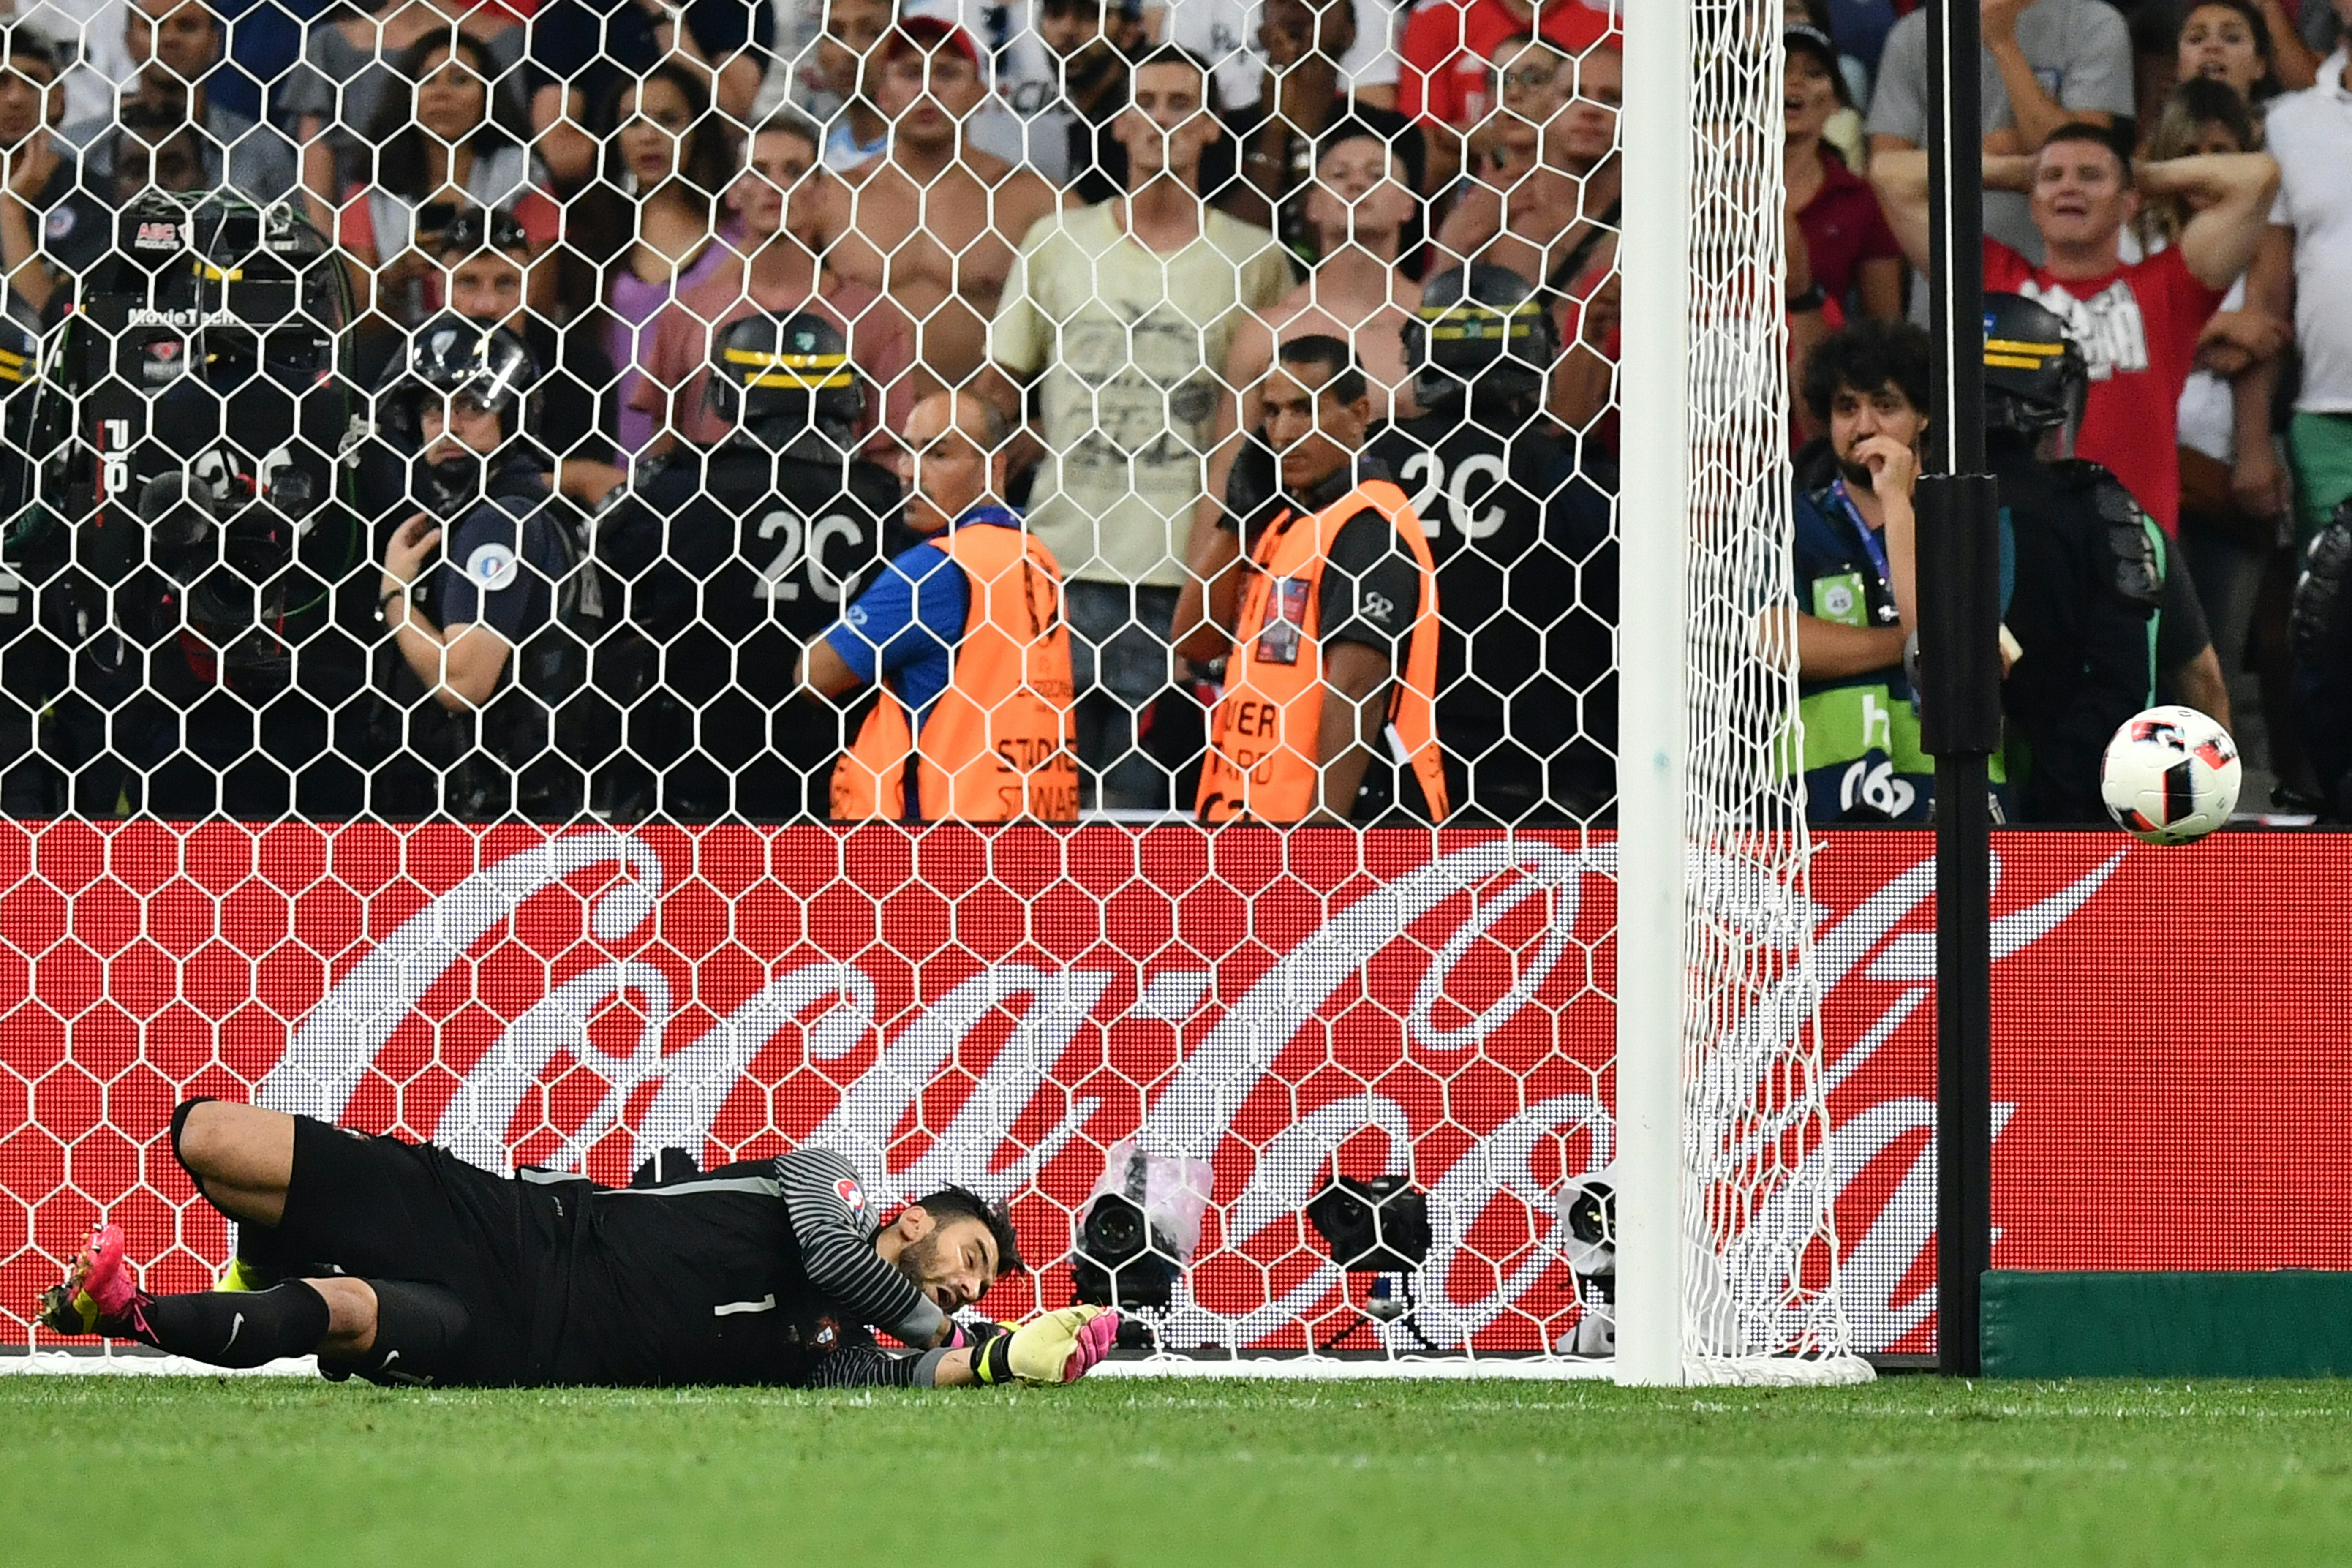 Portugal's goalkeeper Rui Patricio stops a shot in a penalty shoot-out during the Euro 2016 quarter-final football match between Poland and Portugal at the Stade Velodrome in Marseille on June 30, 2016. / AFP PHOTO / BERTRAND LANGLOIS